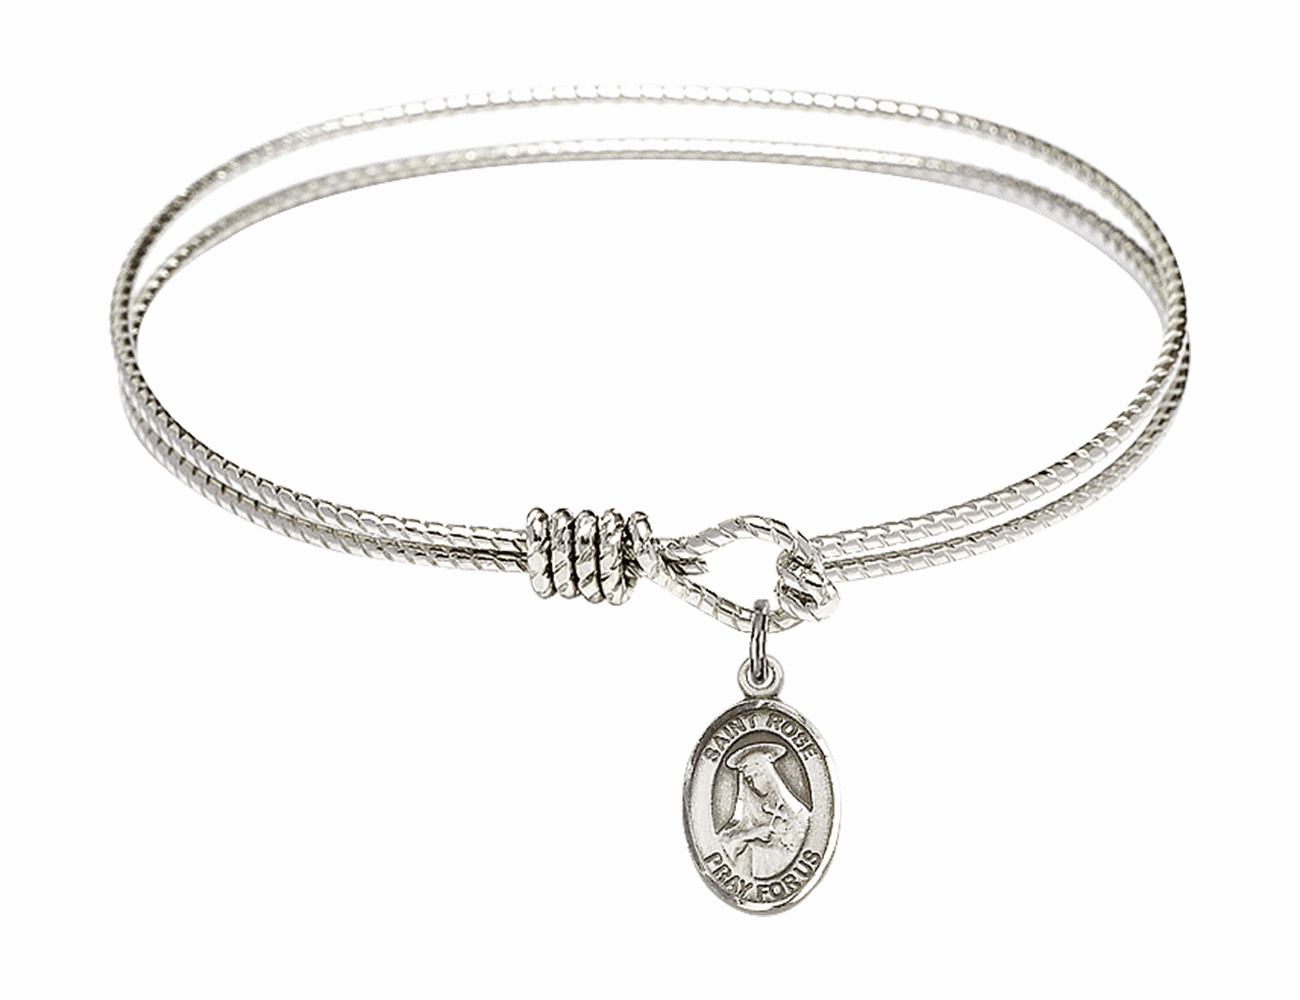 Twist Round Eye Hook St Rose of Lima Bangle Charm Bracelet by Bliss Mfg